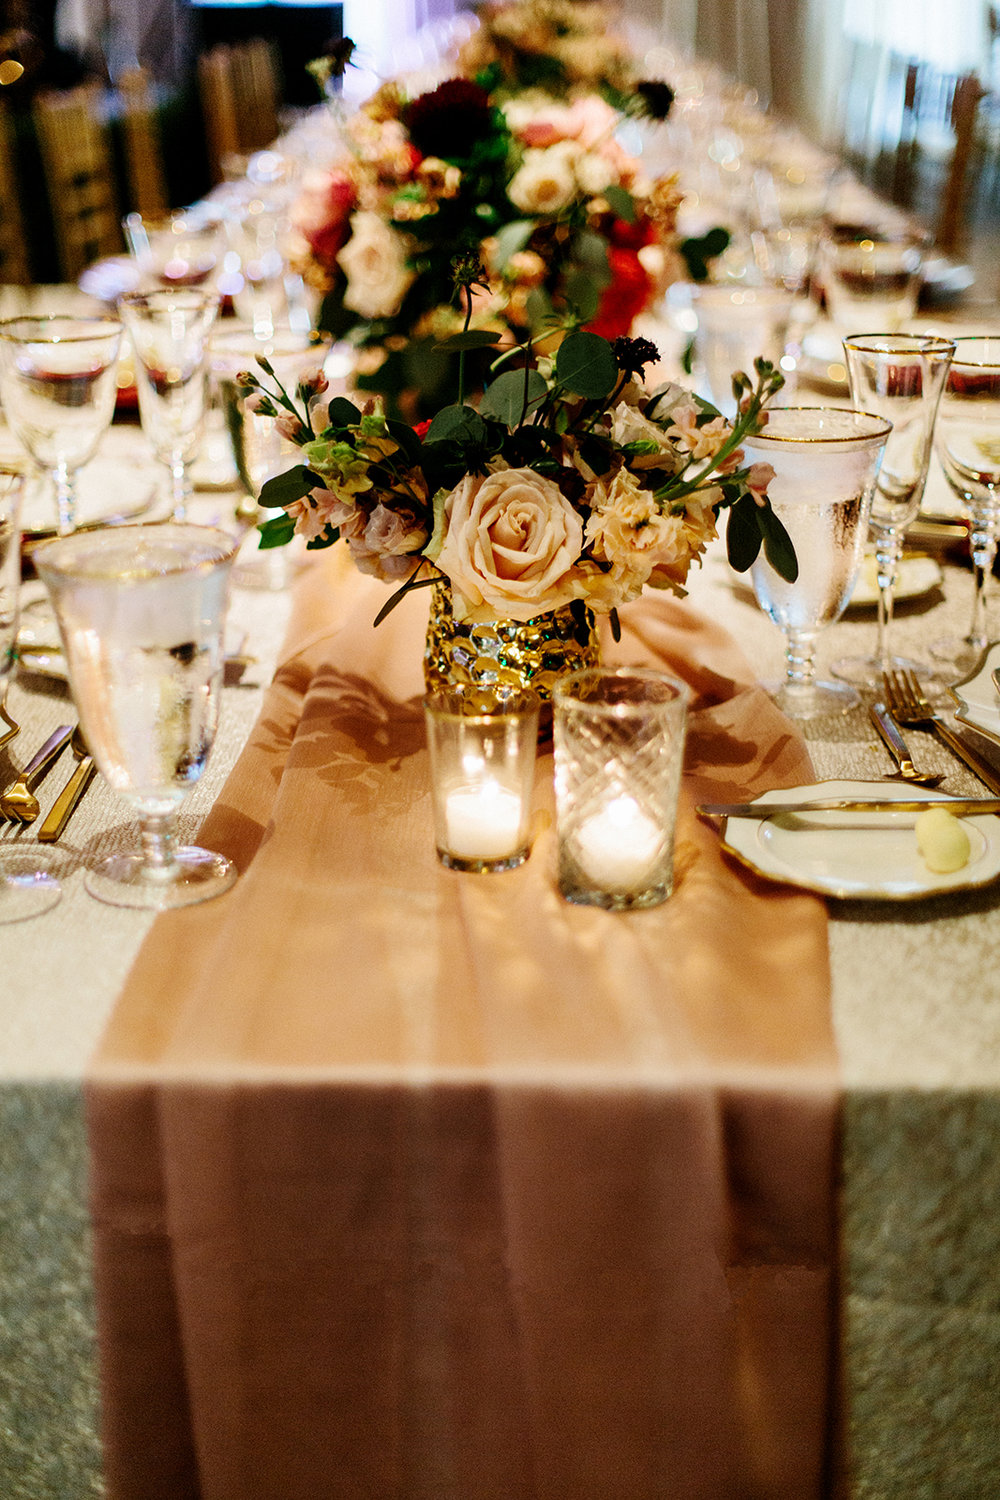 TPC Sawgrass Wedding Reception Ponte Vedra Beach Blue Ribbon Wedding Planner Shea Hopely Flowers Debra Eby Photography